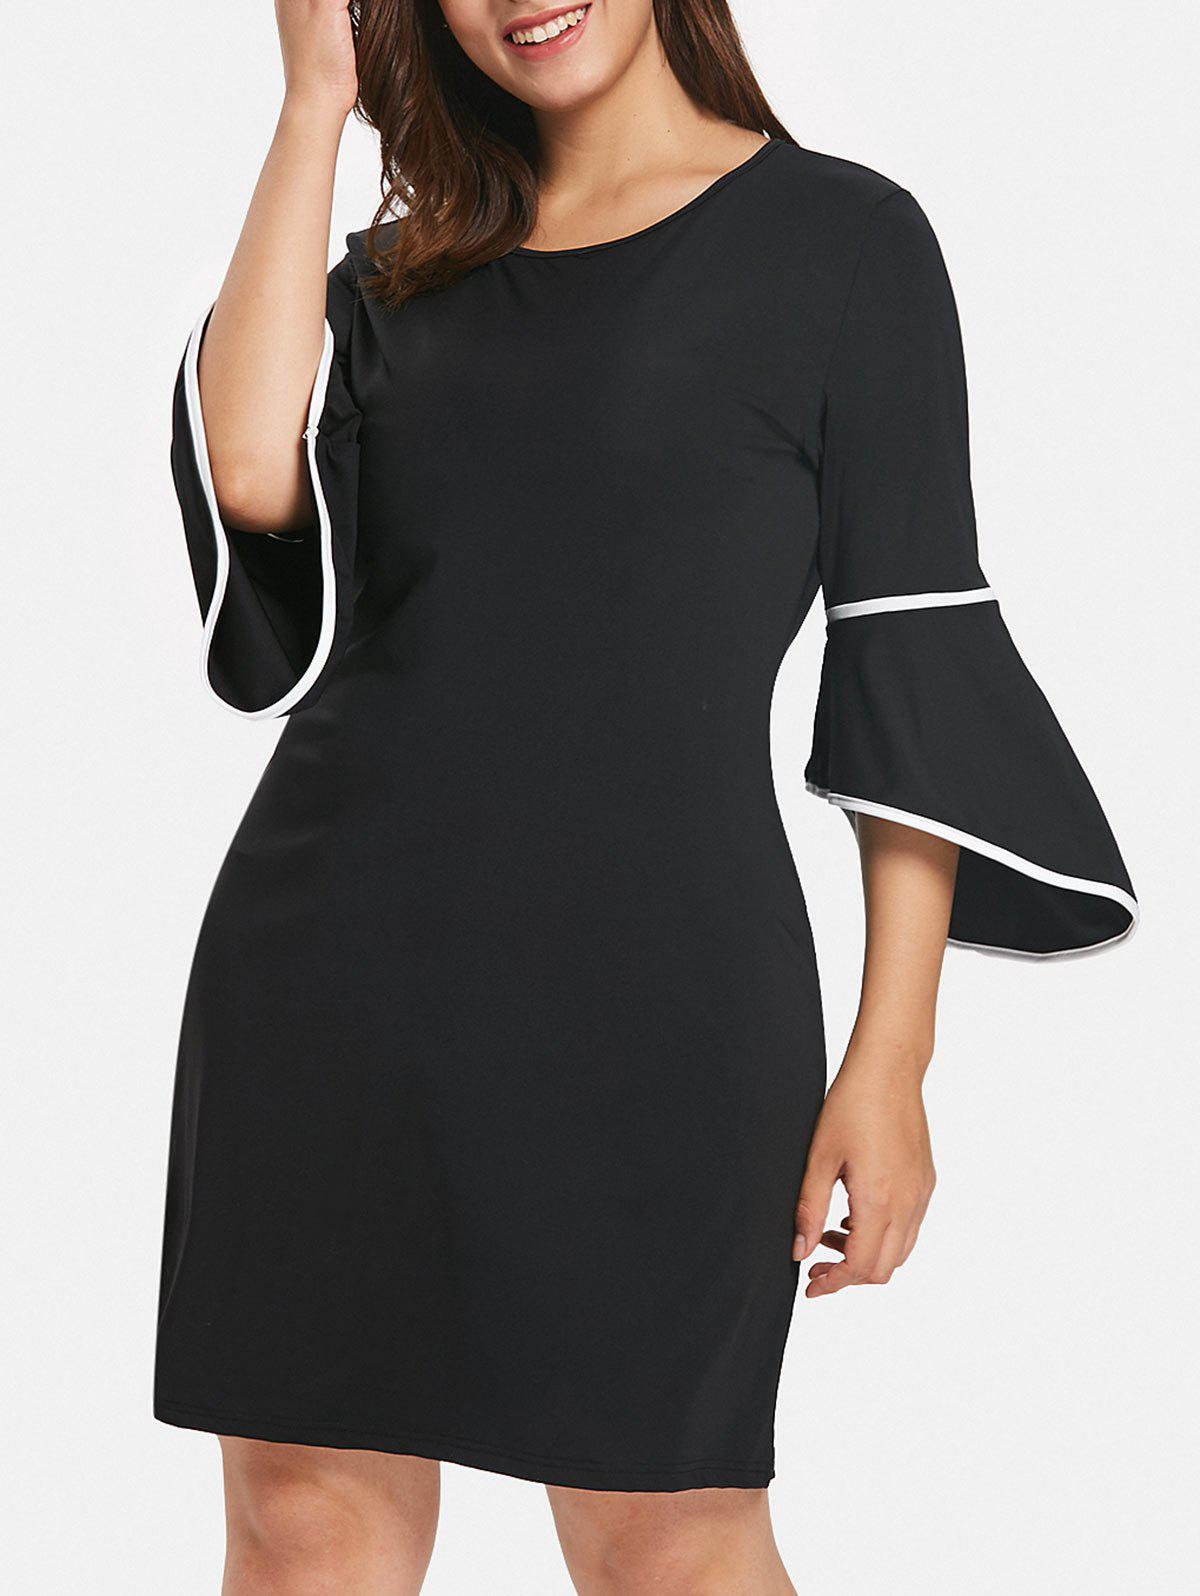 Buy Plus Size Casual Knee Length Dress